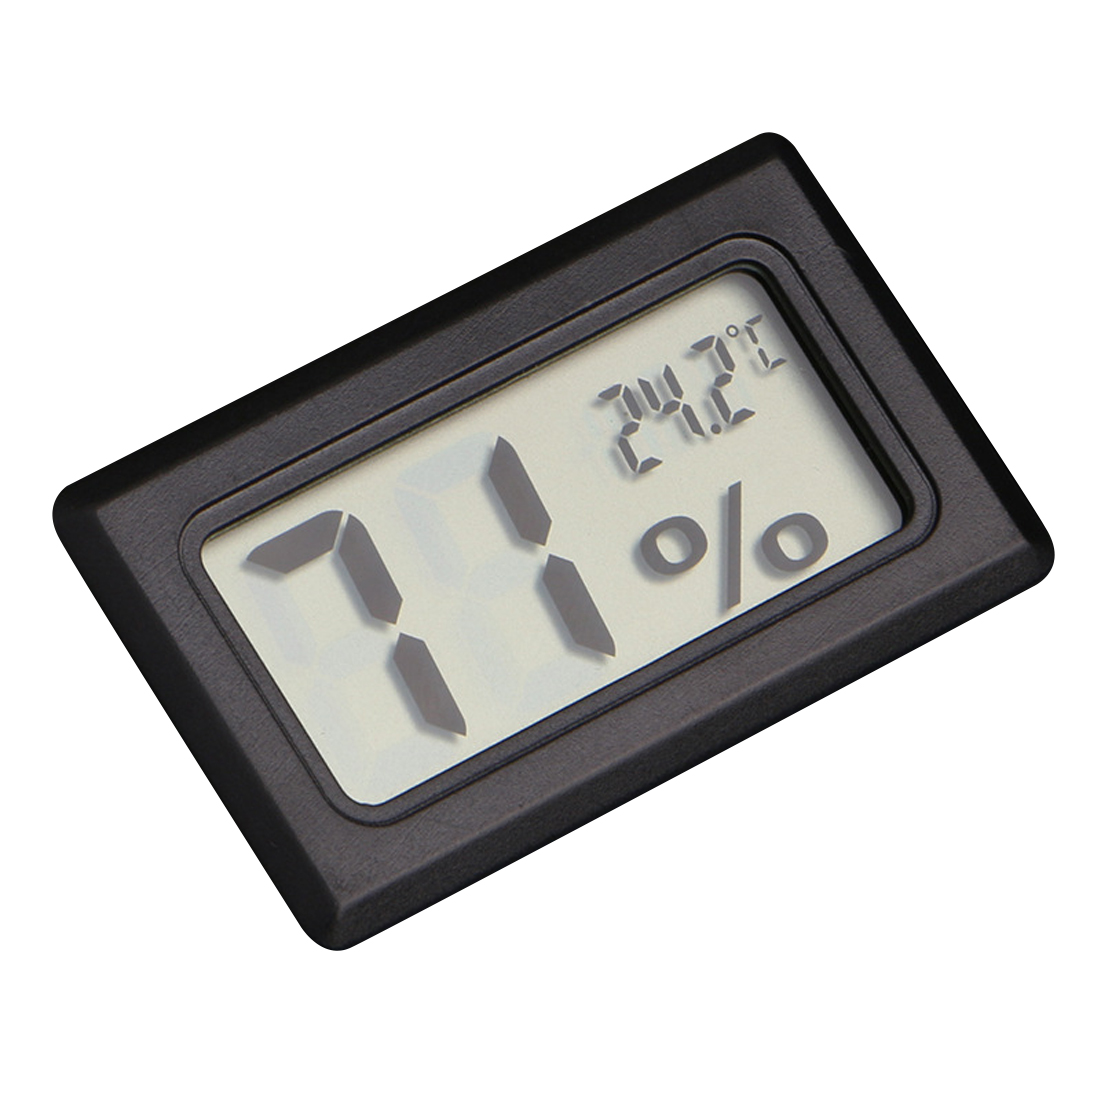 Mini Black Digital LCD Temperature Humidity Indoor Room Humidity Meter Thermometer Hygrometer Temperature Sensor Humidity худи topman topman to030emzcj39 page 2